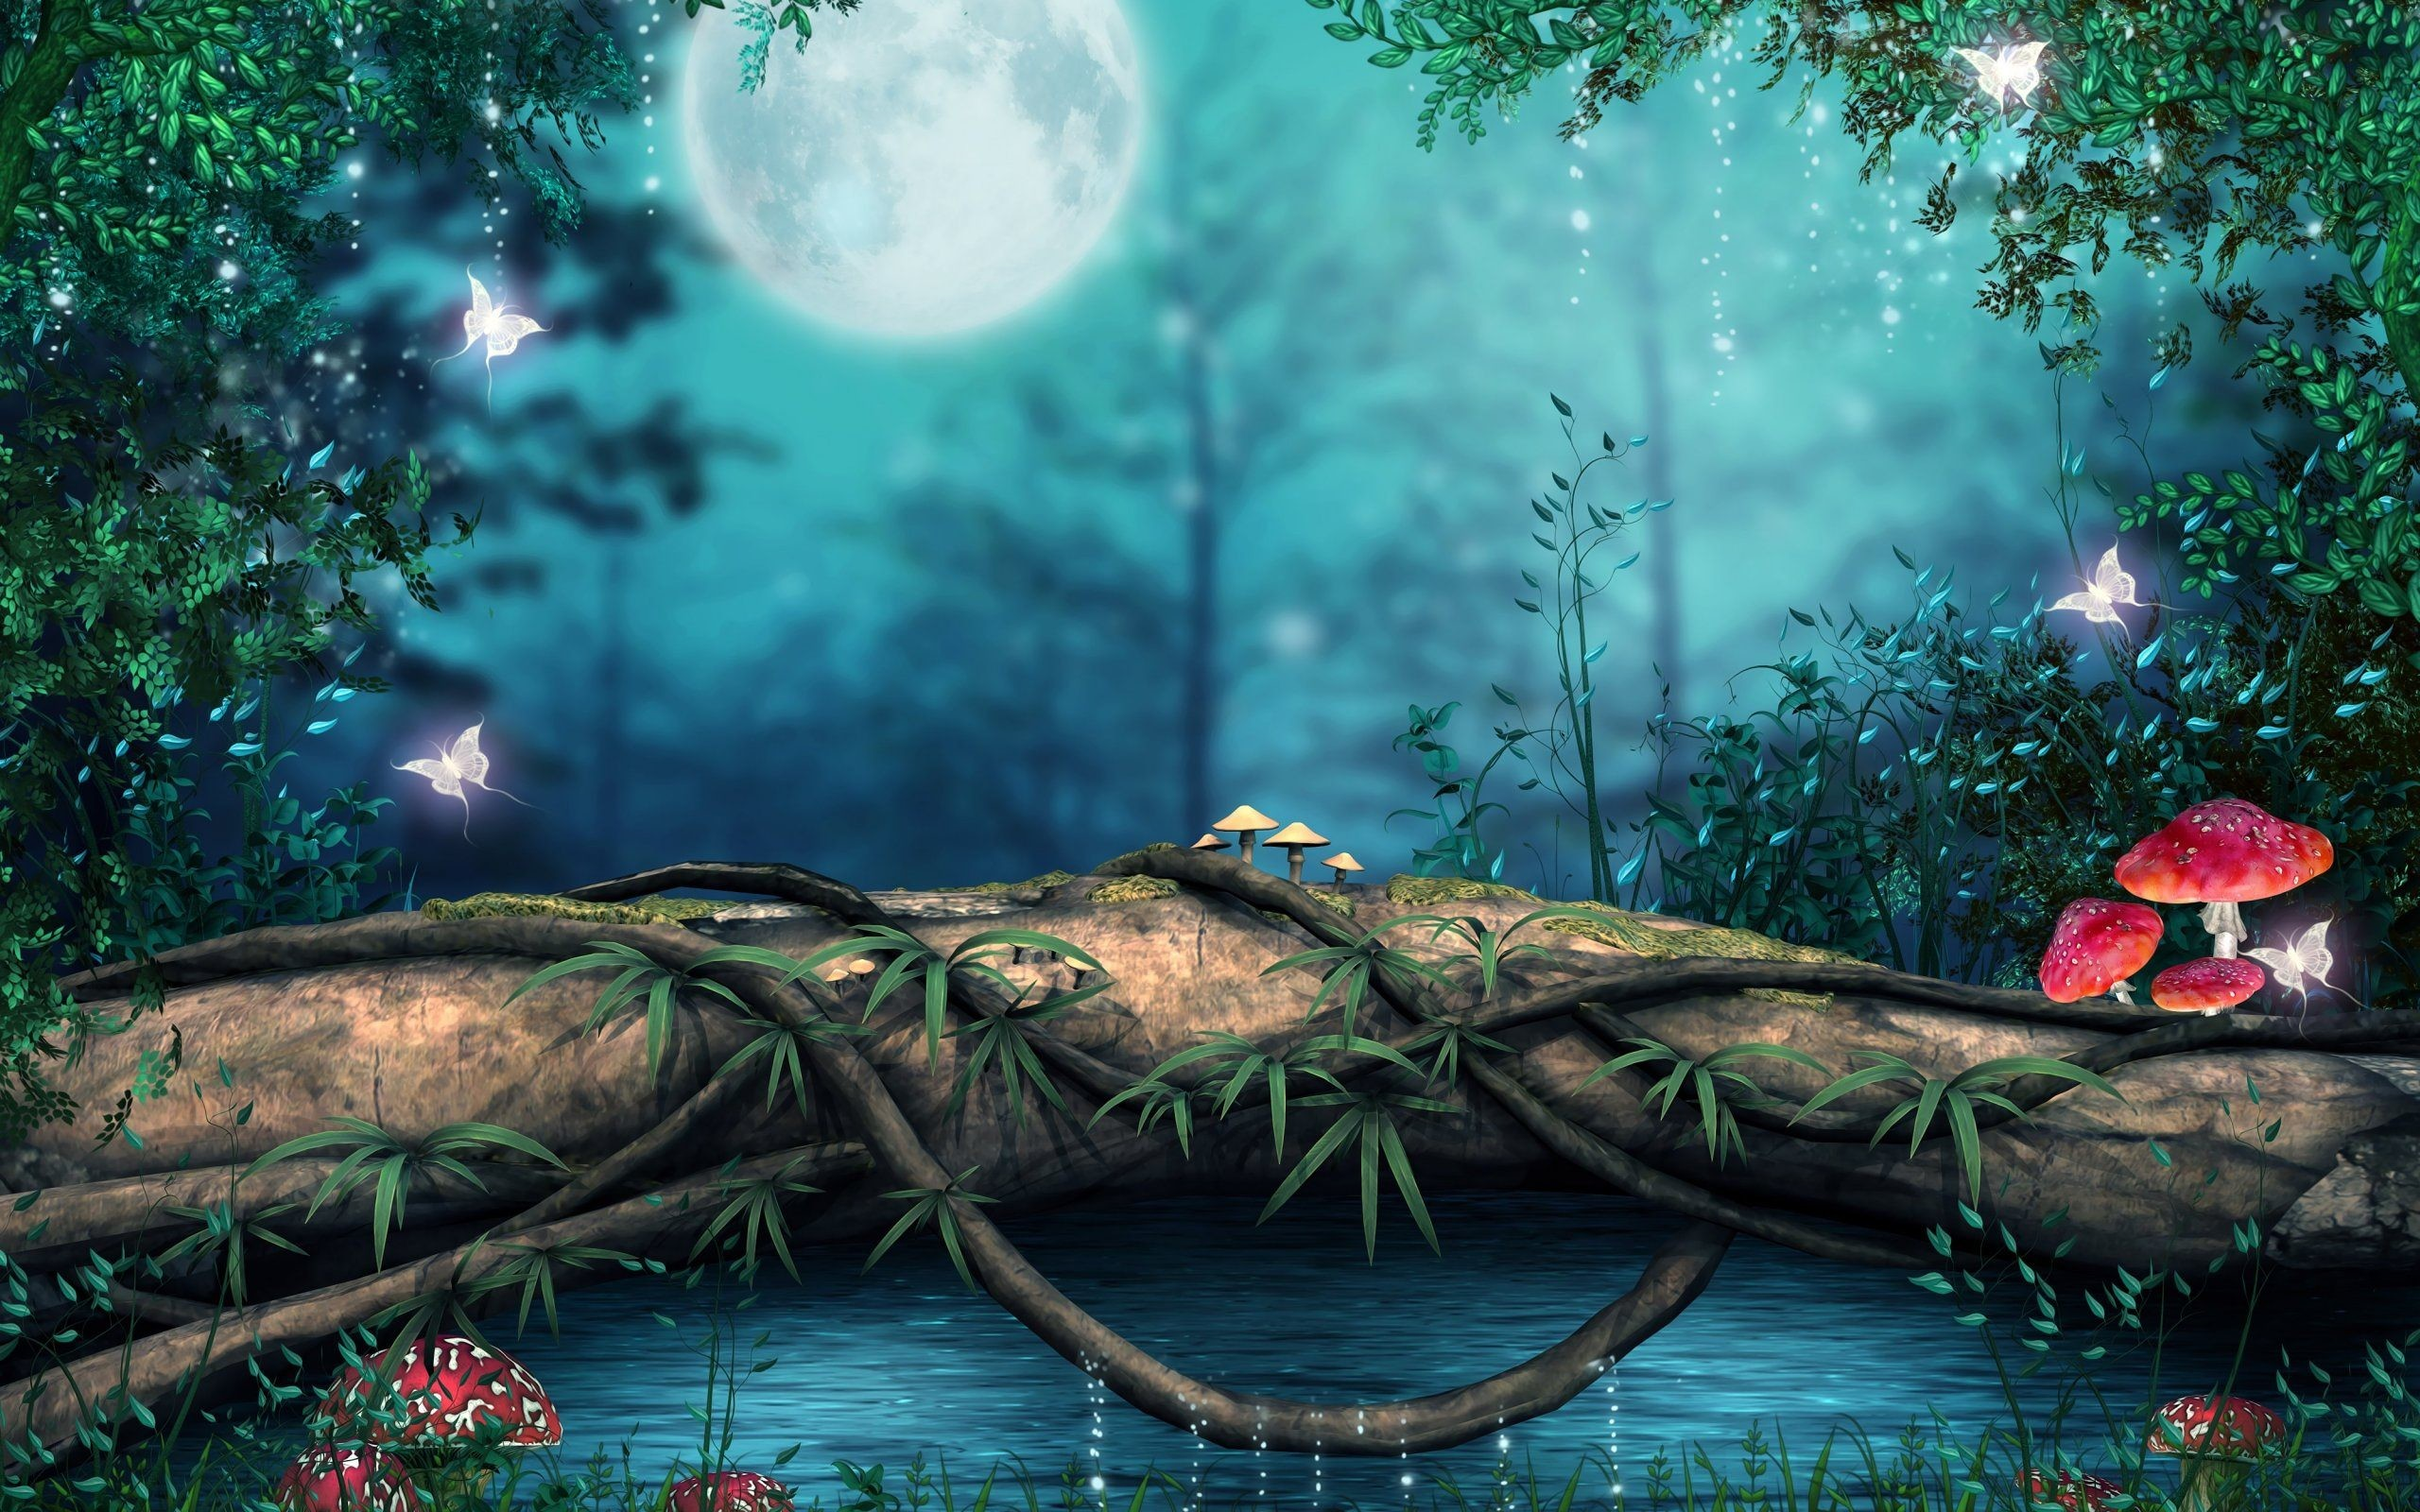 3D 1920x1080 HD Nature Wallpapers (56+ images)